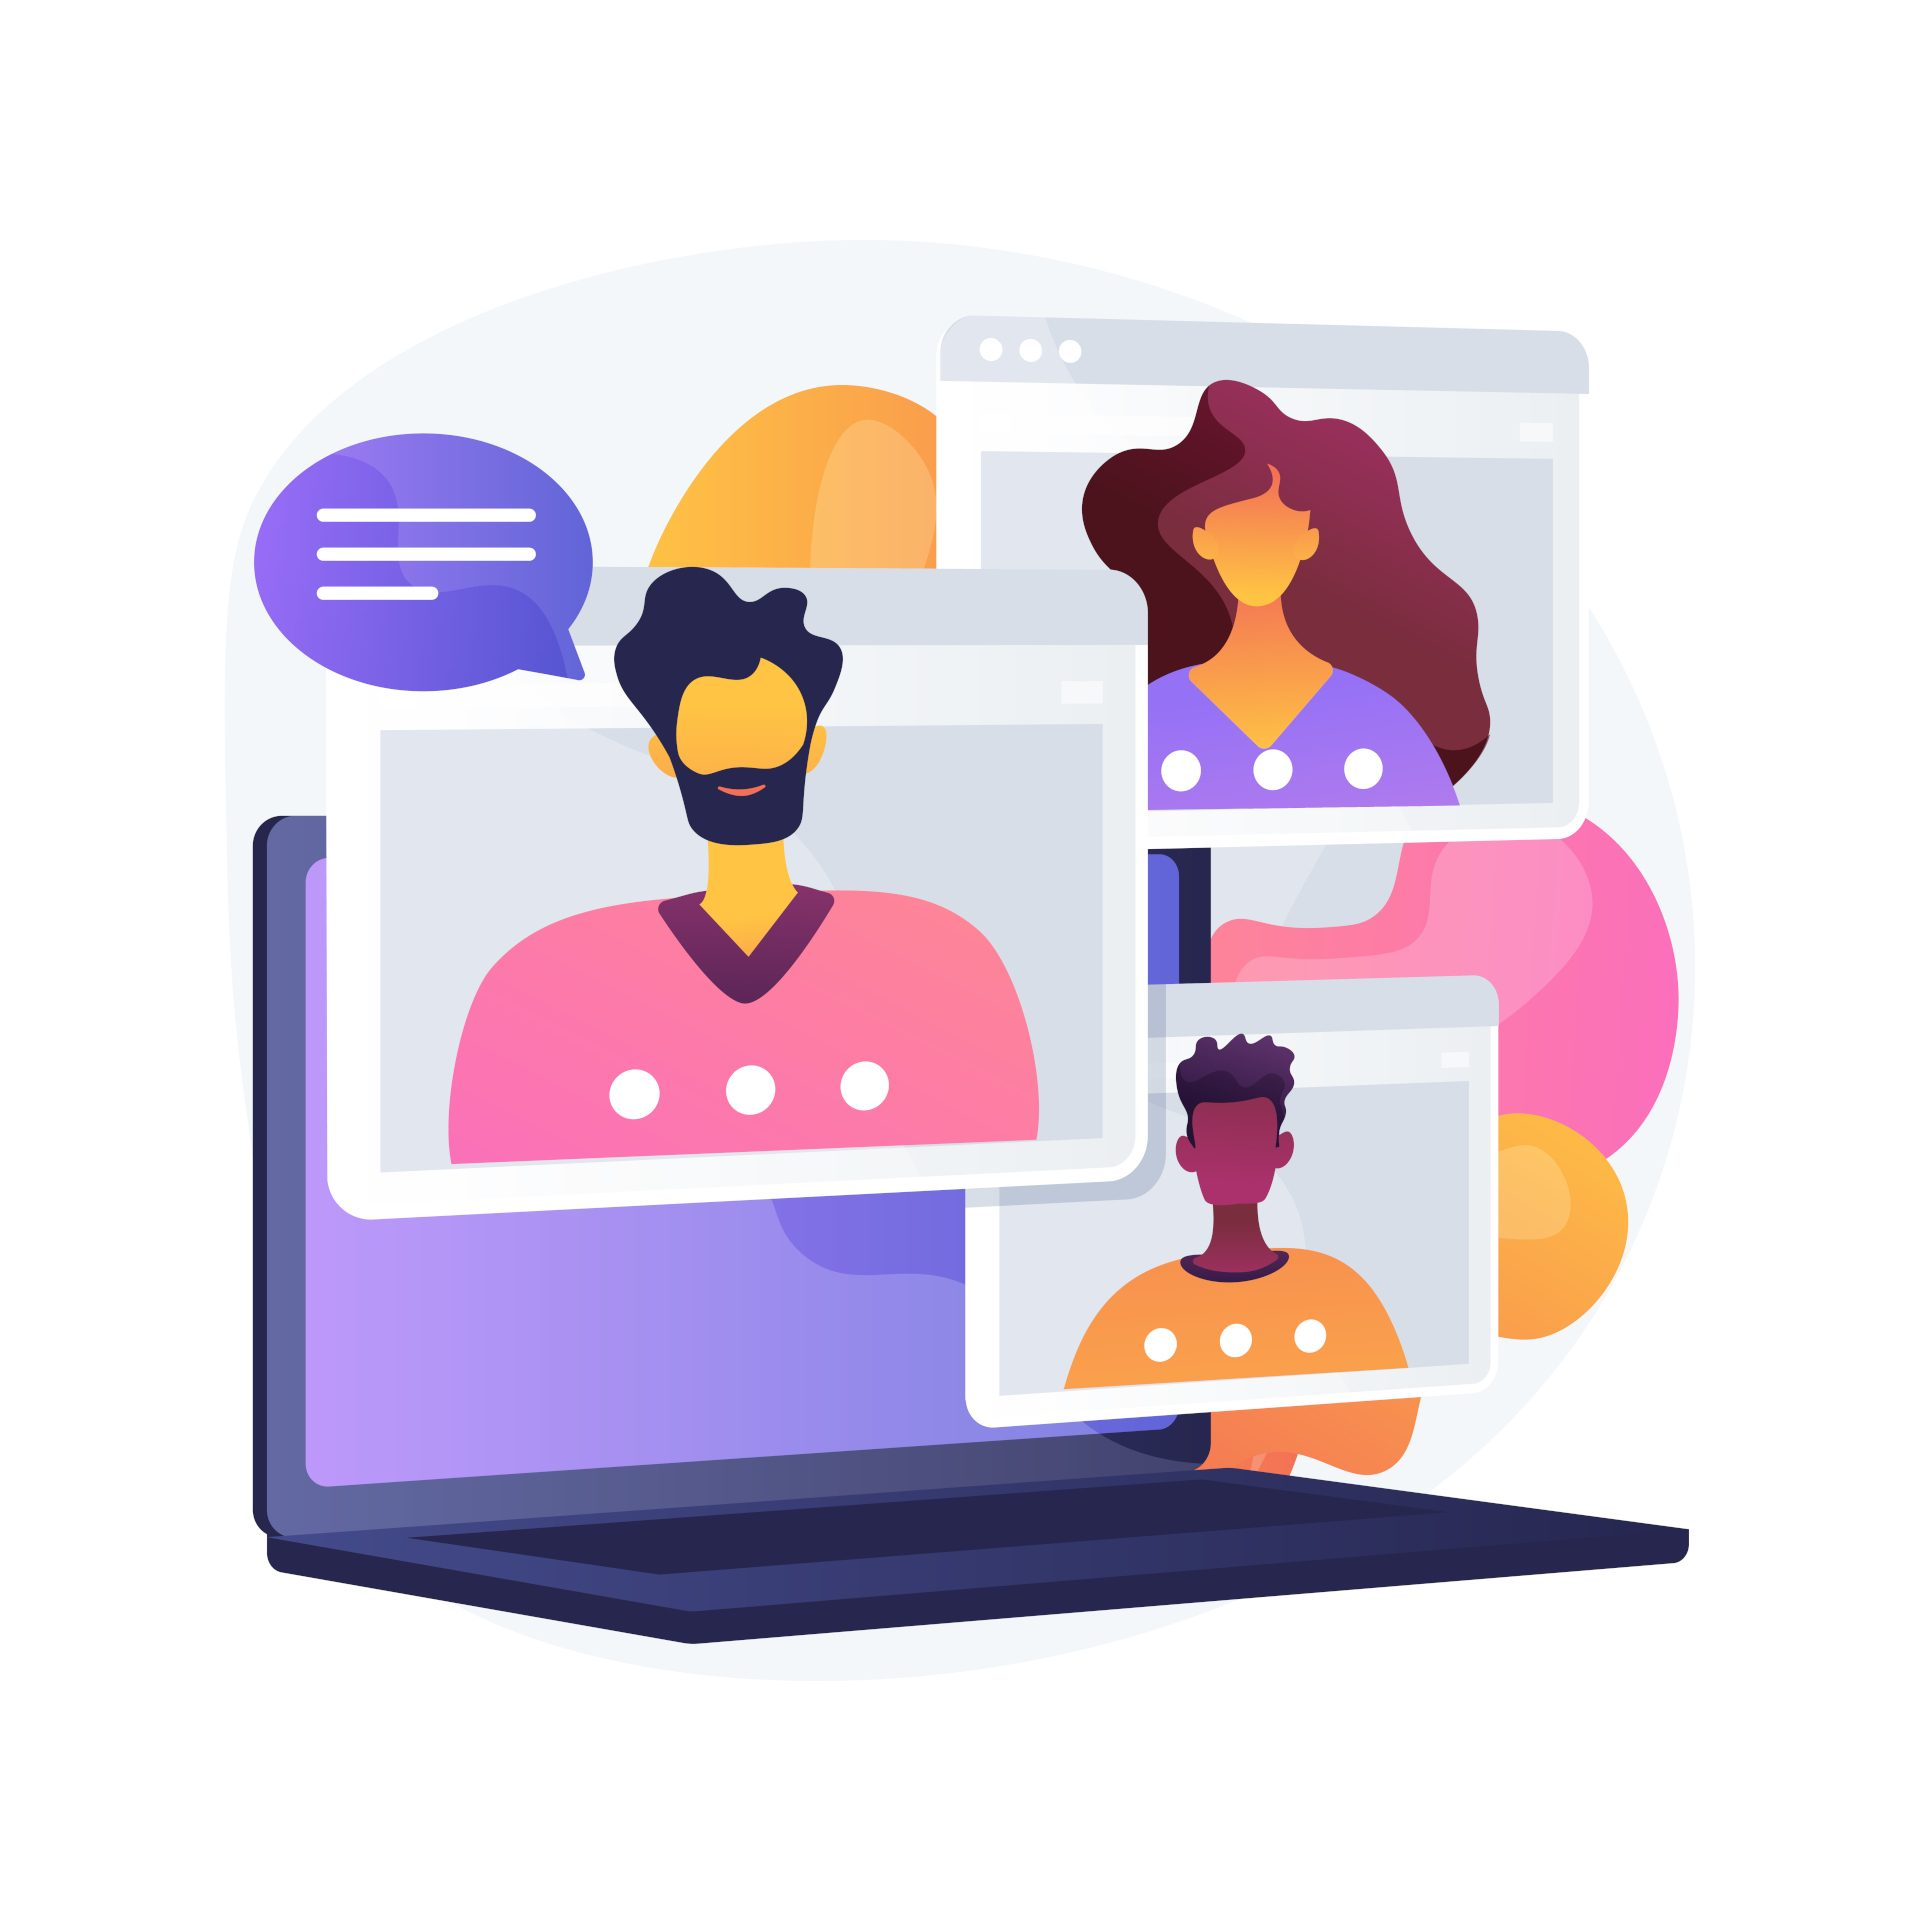 Online meetup abstract concept vector illustration.